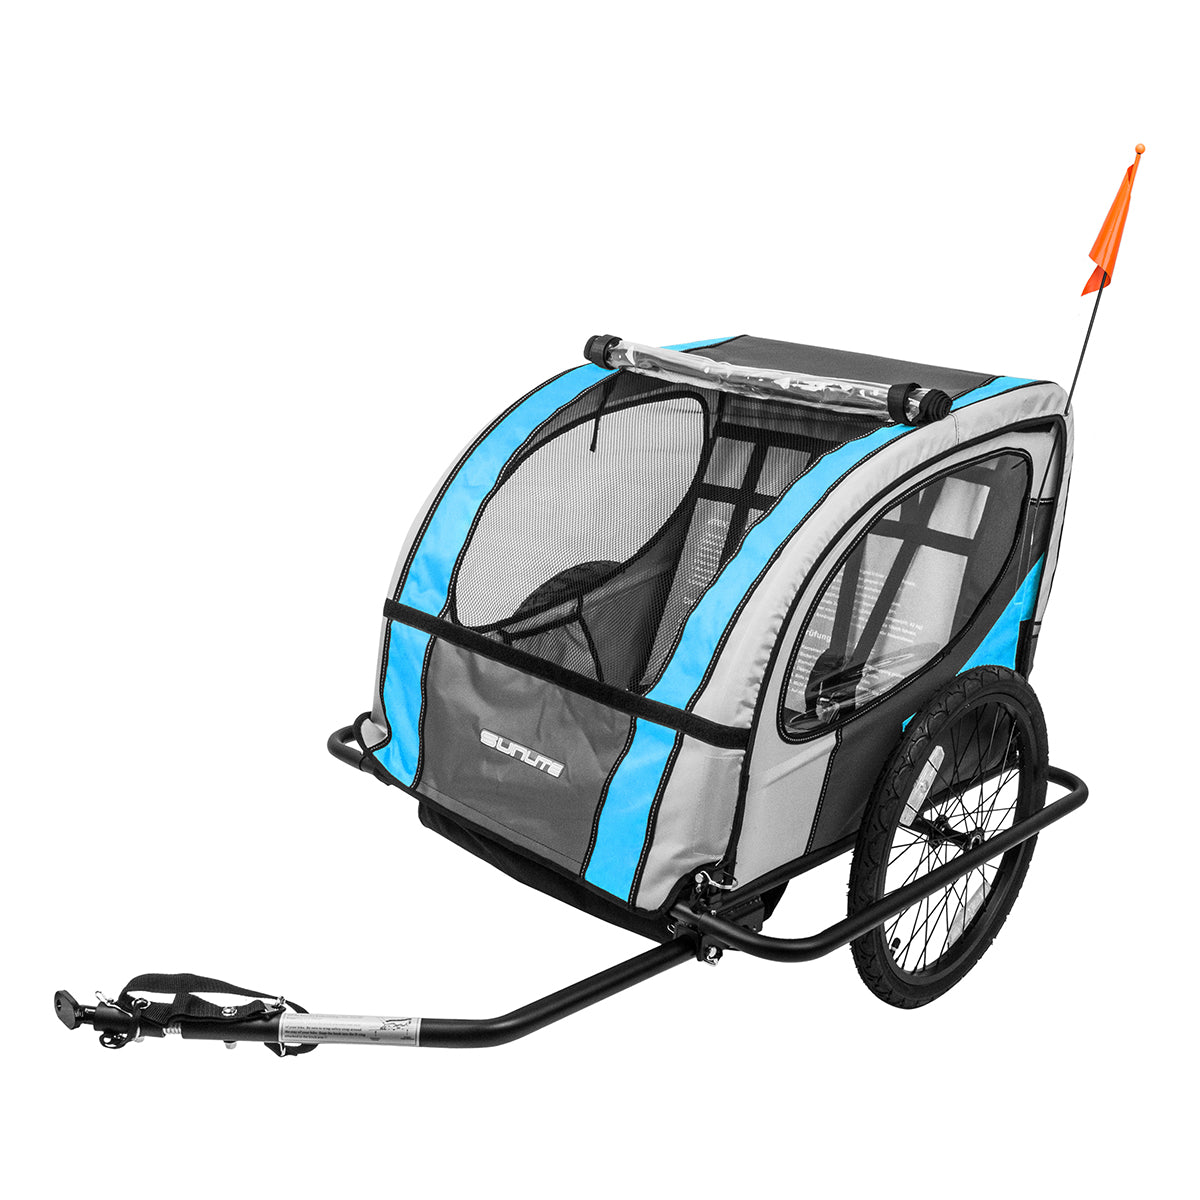 Attachable bike trailer with mesh walls